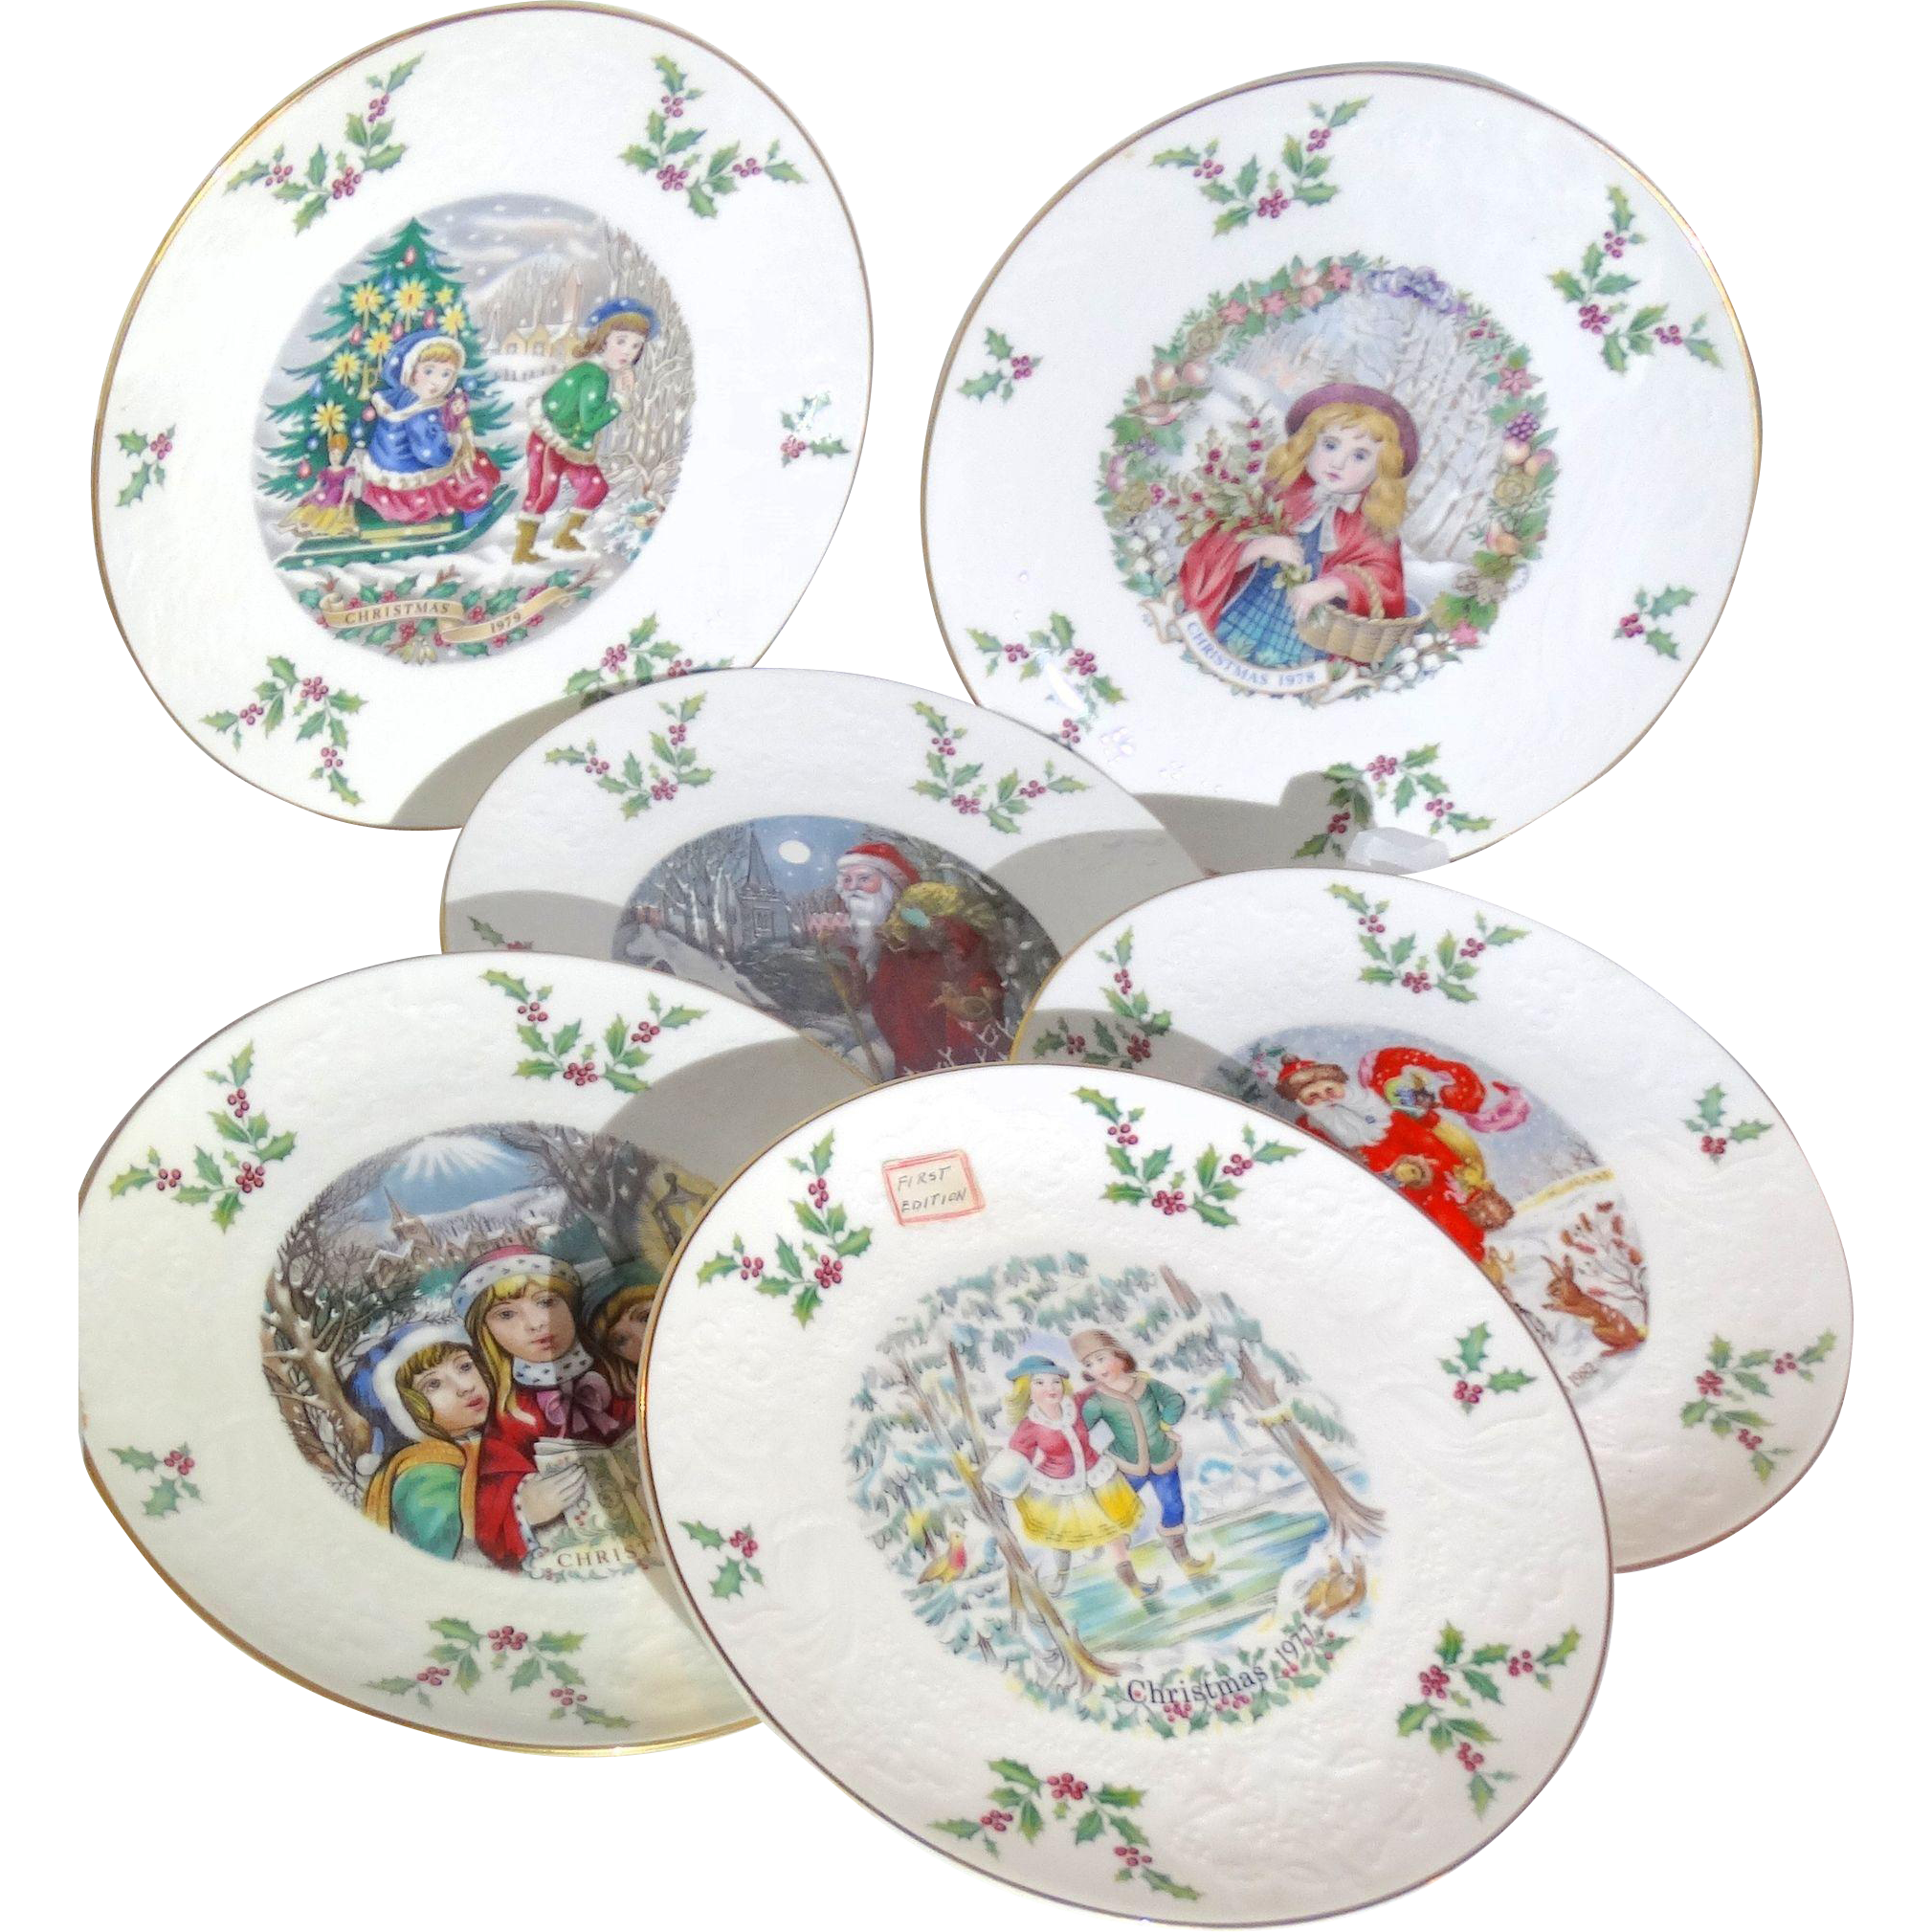 Royal Doulton Christmas Plates -First Through Sixth - 1977 through 1982